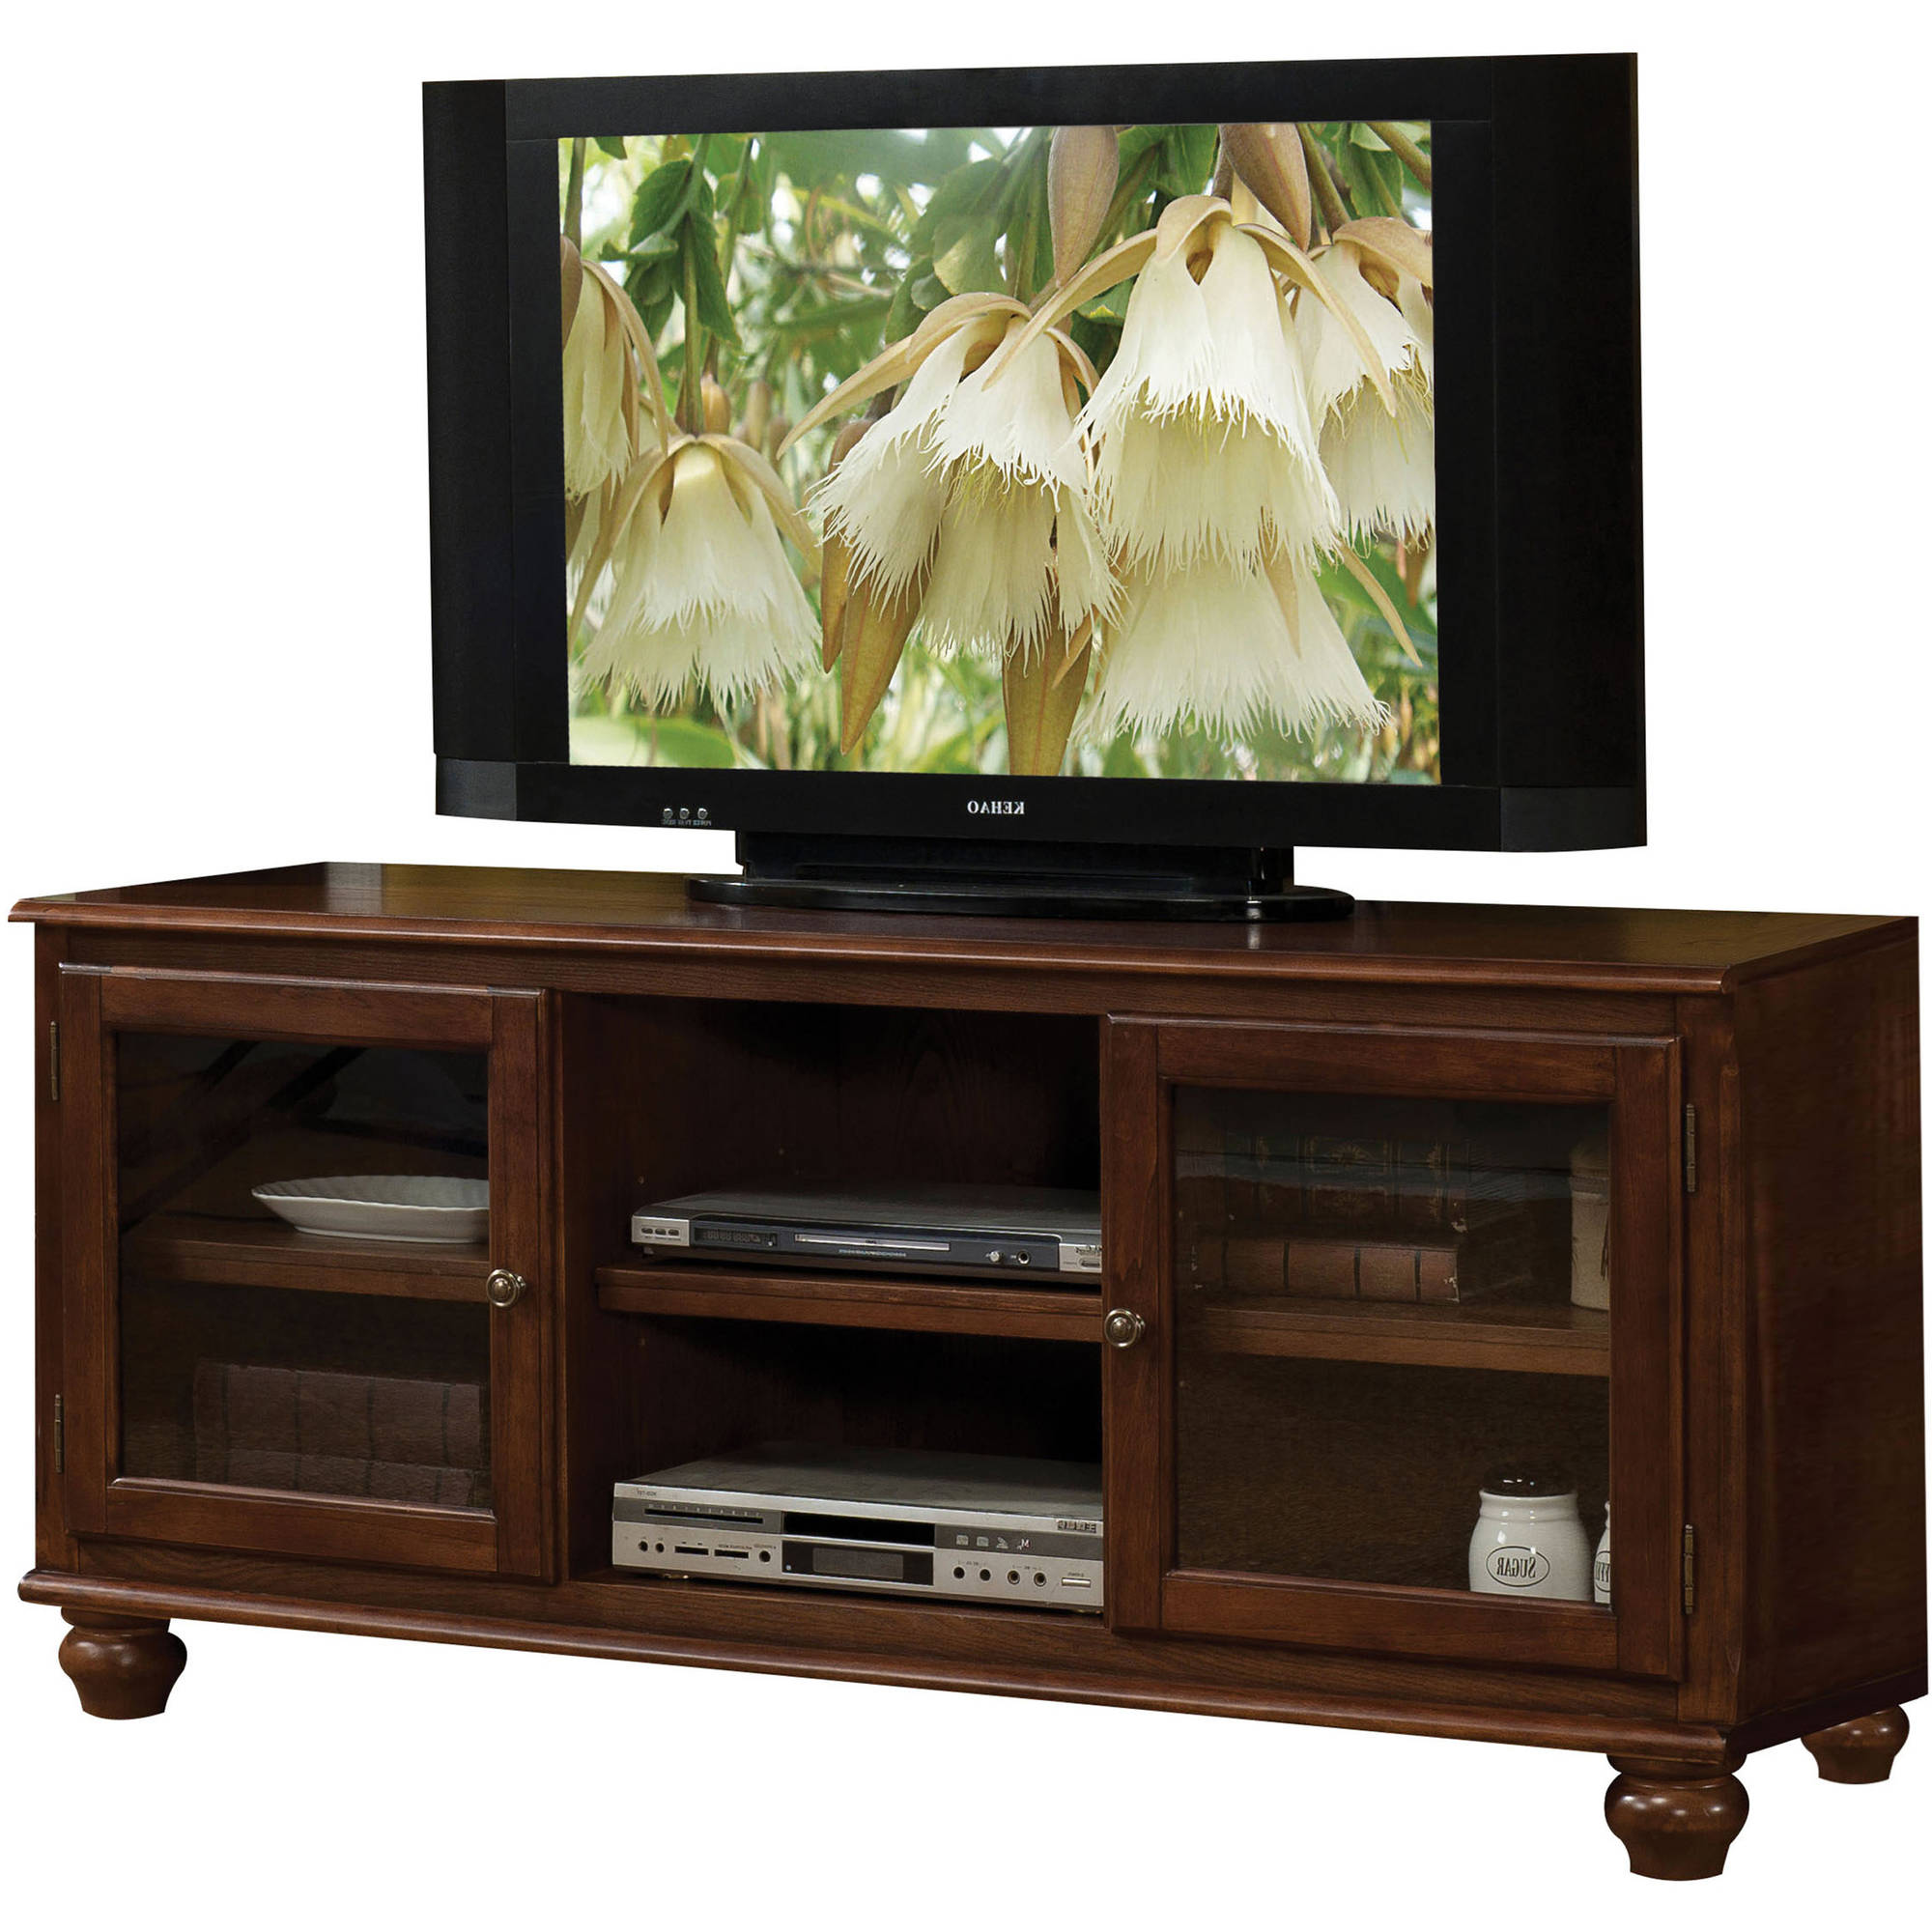 "Acme Dita TV Stand for TVs up to 59"", Walnut"